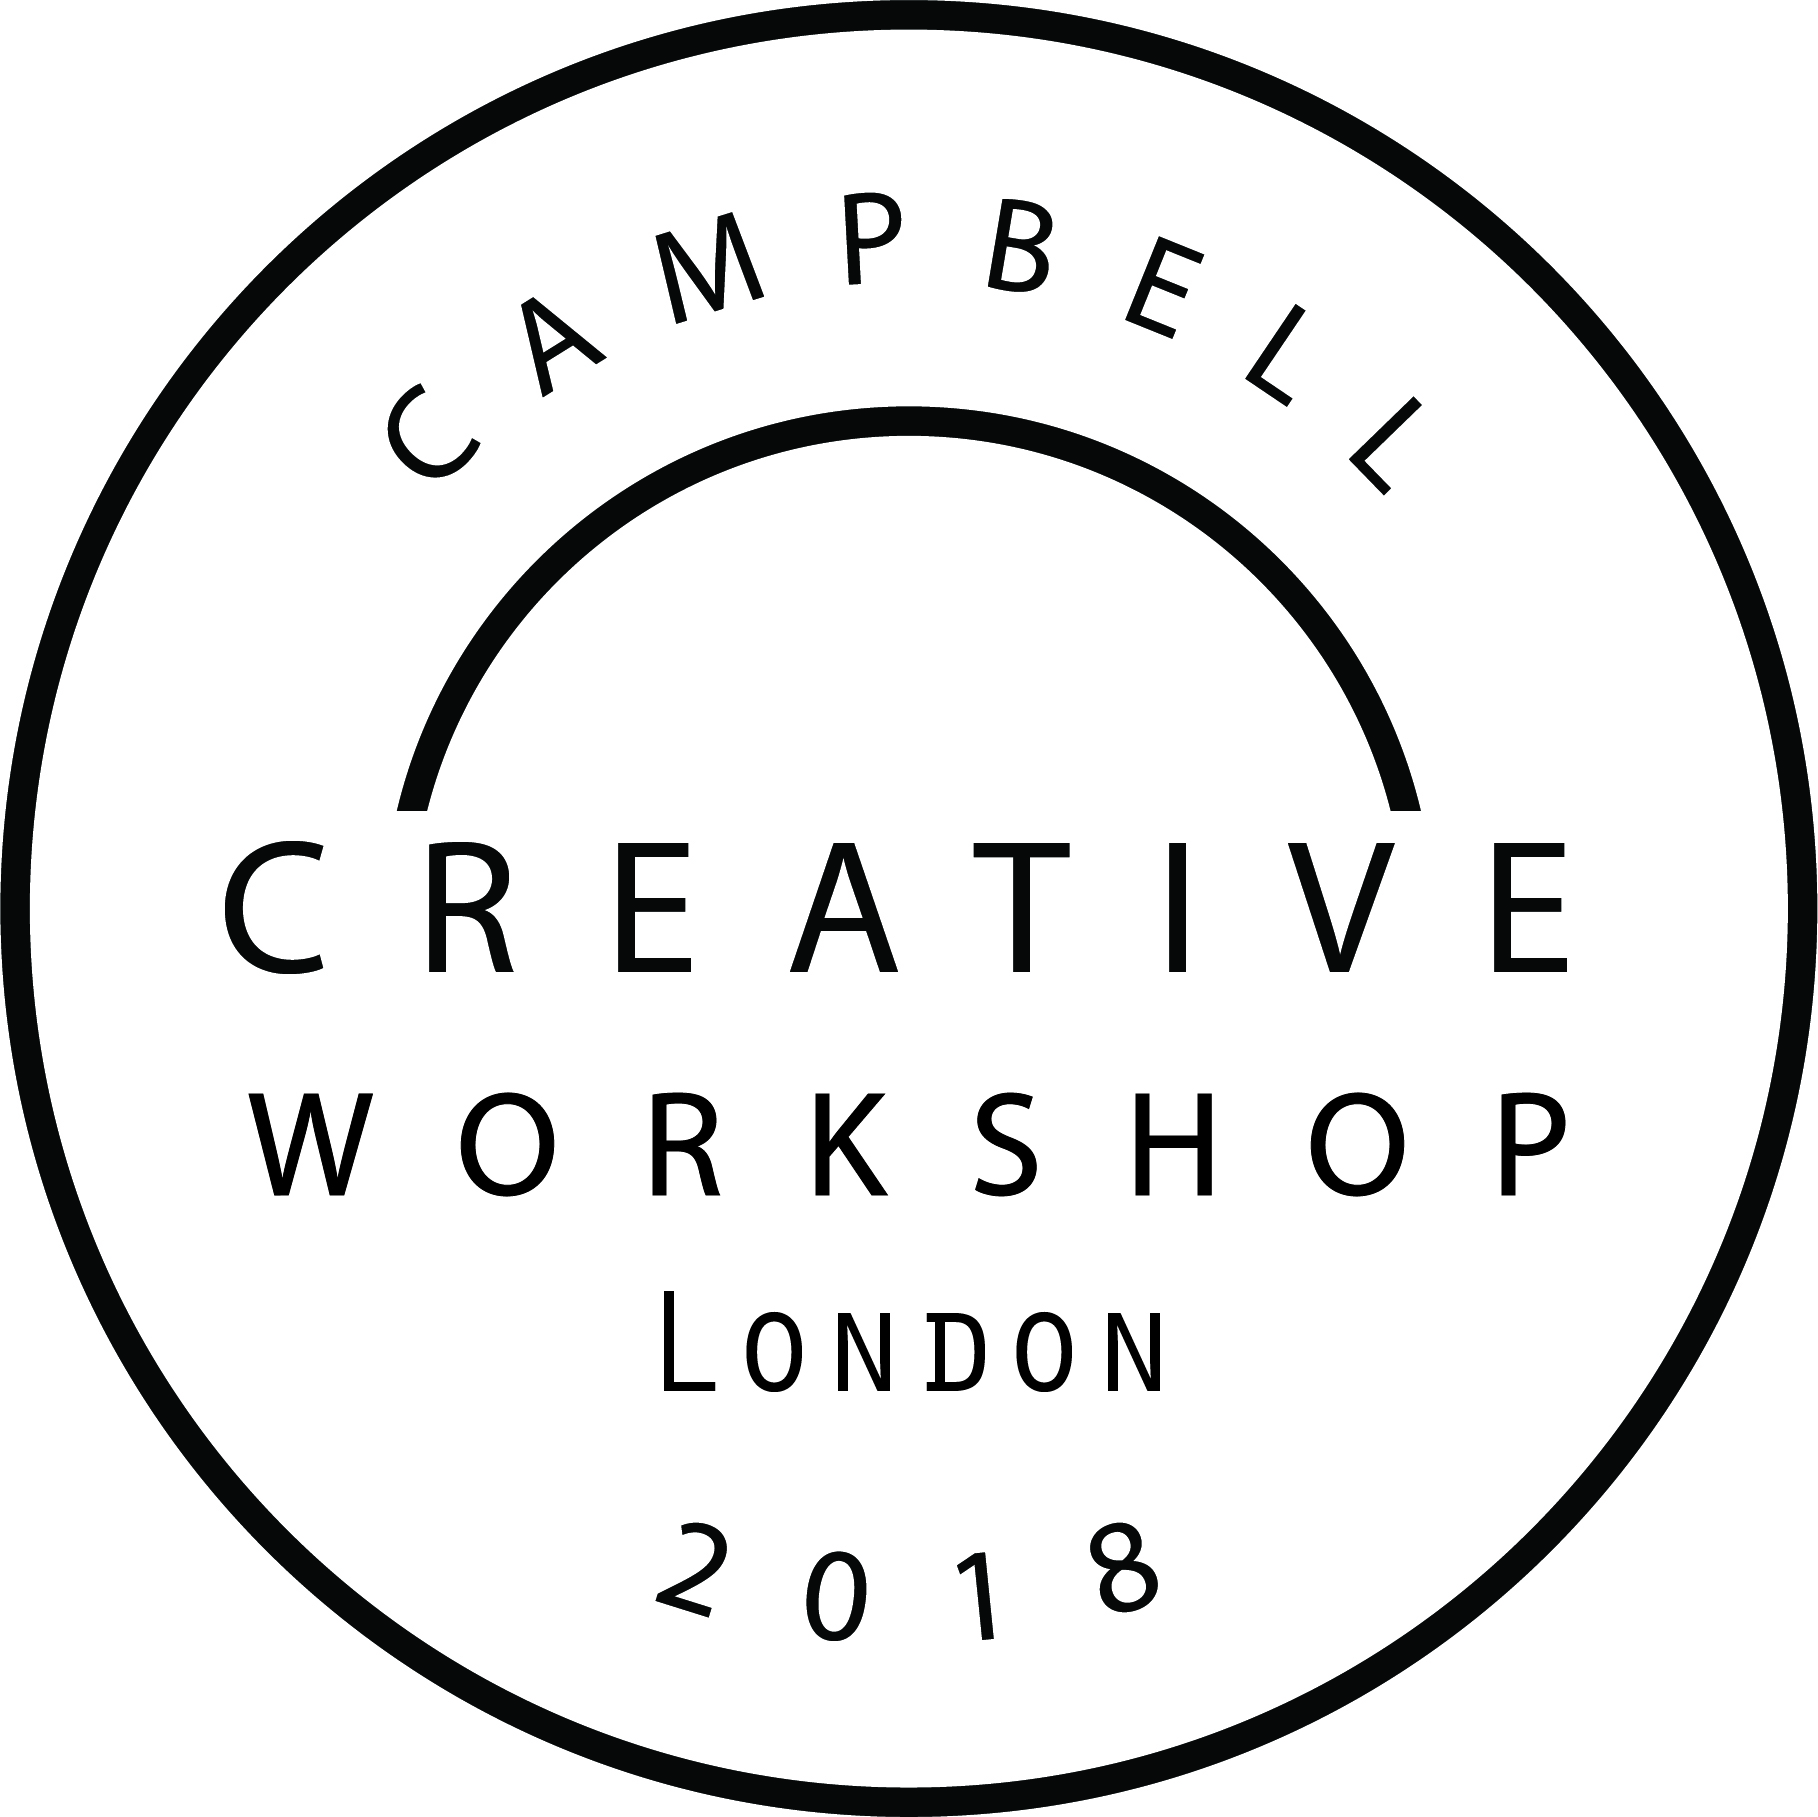 Rubber Stamp Workshop by Campbell Creative Workshop - crafts in London